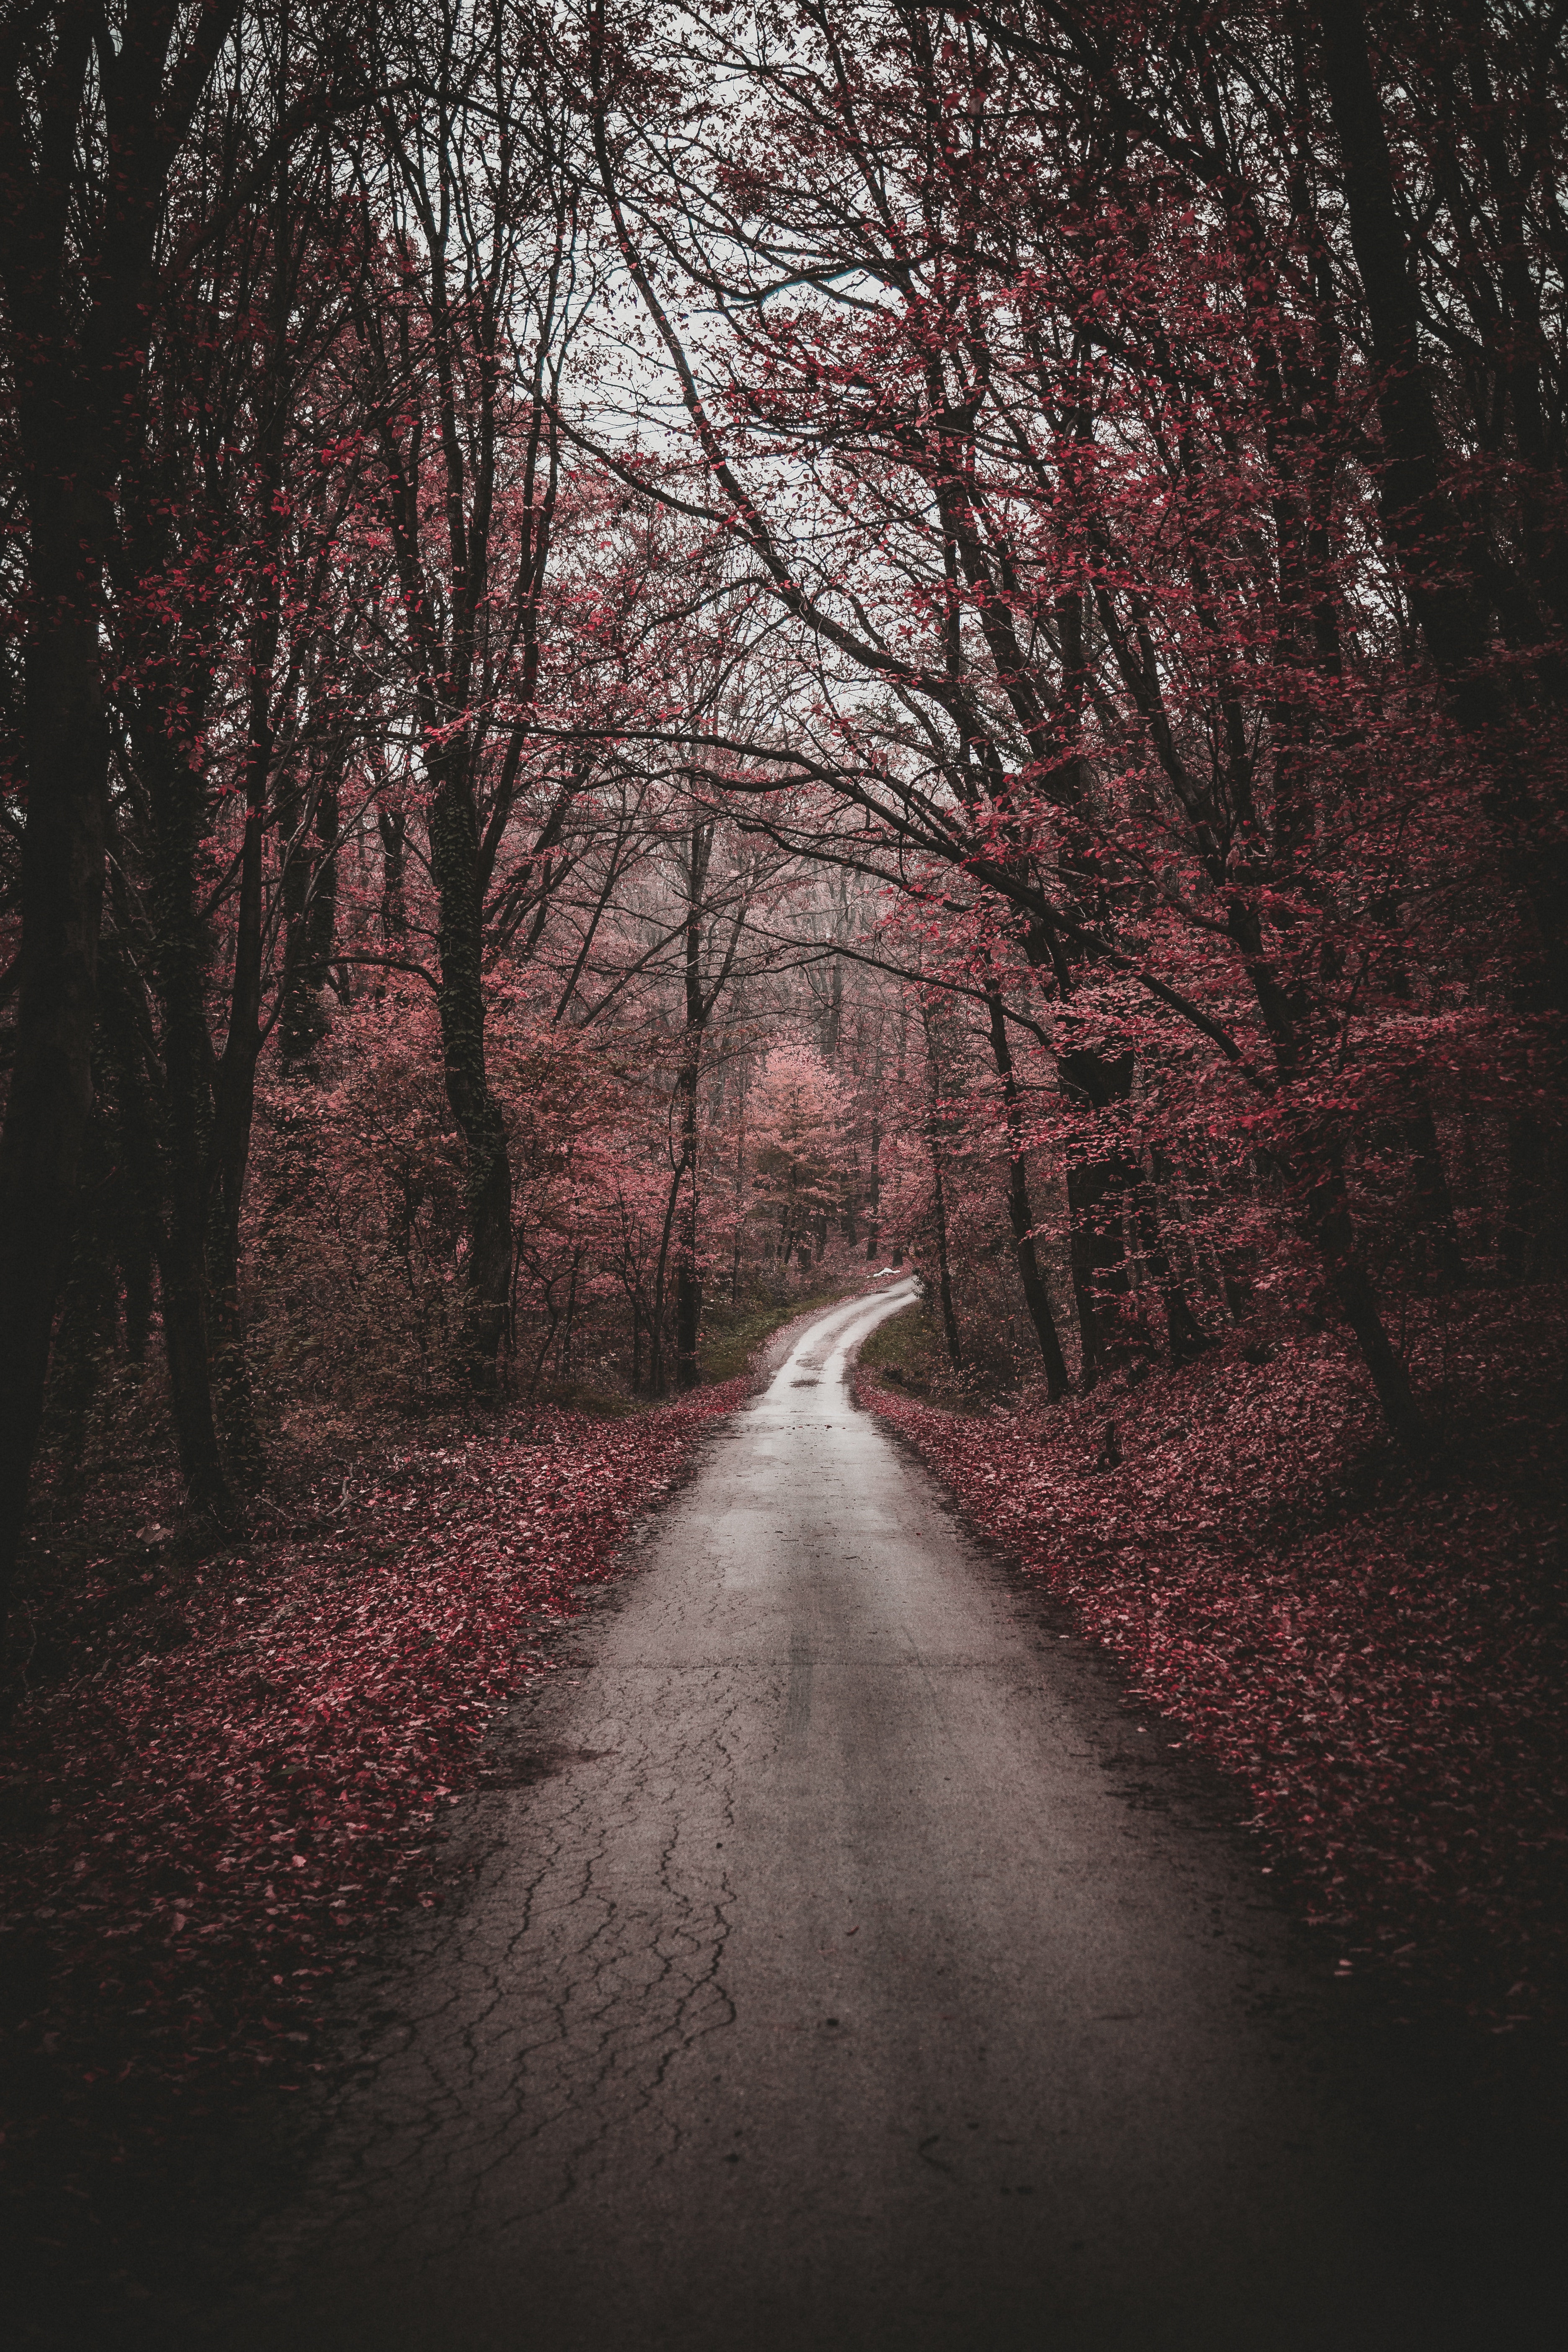 87319 free wallpaper 720x1280 for phone, download images Nature, Trees, Autumn, Forest, Path, Stroll 720x1280 for mobile